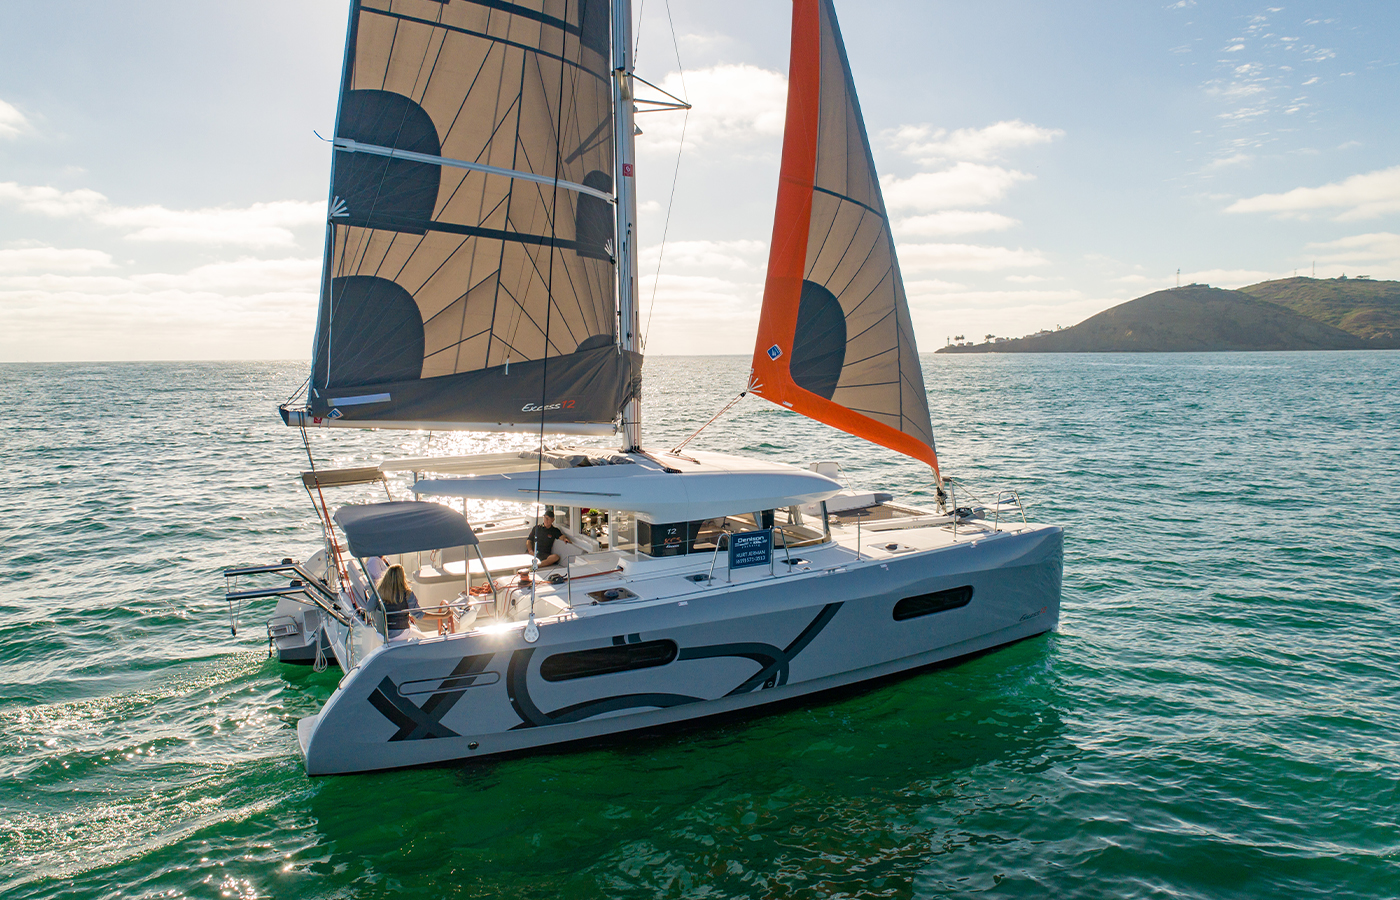 Excess 12 Wins Catamaran Of The Year [Yacht Highlight]